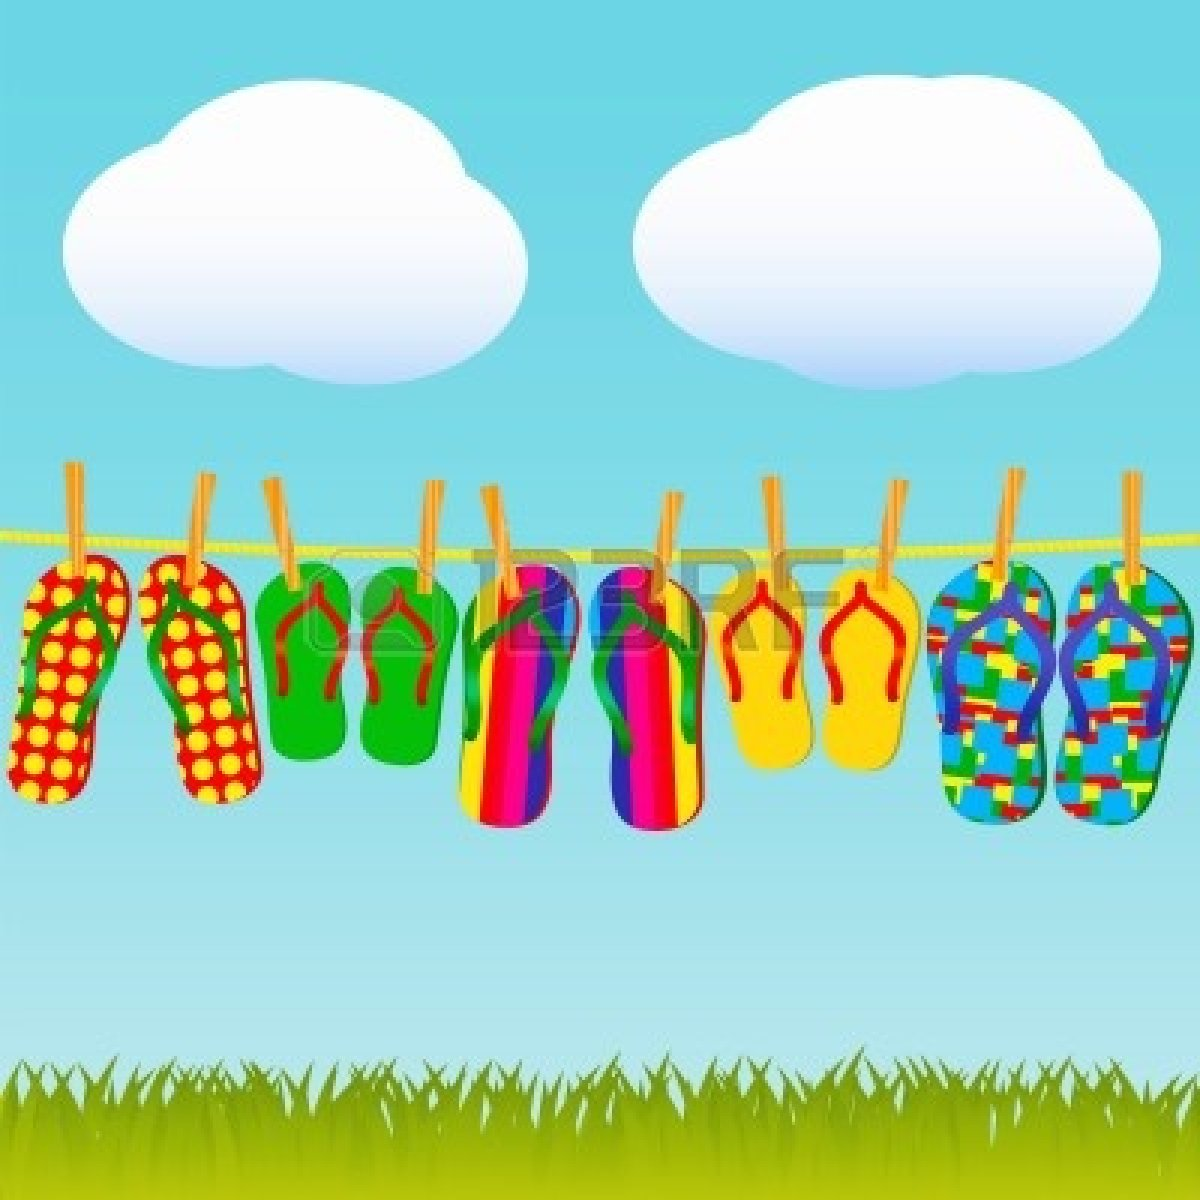 Summer pictures clip art banner library download Summer fun clipart images - ClipartFest banner library download